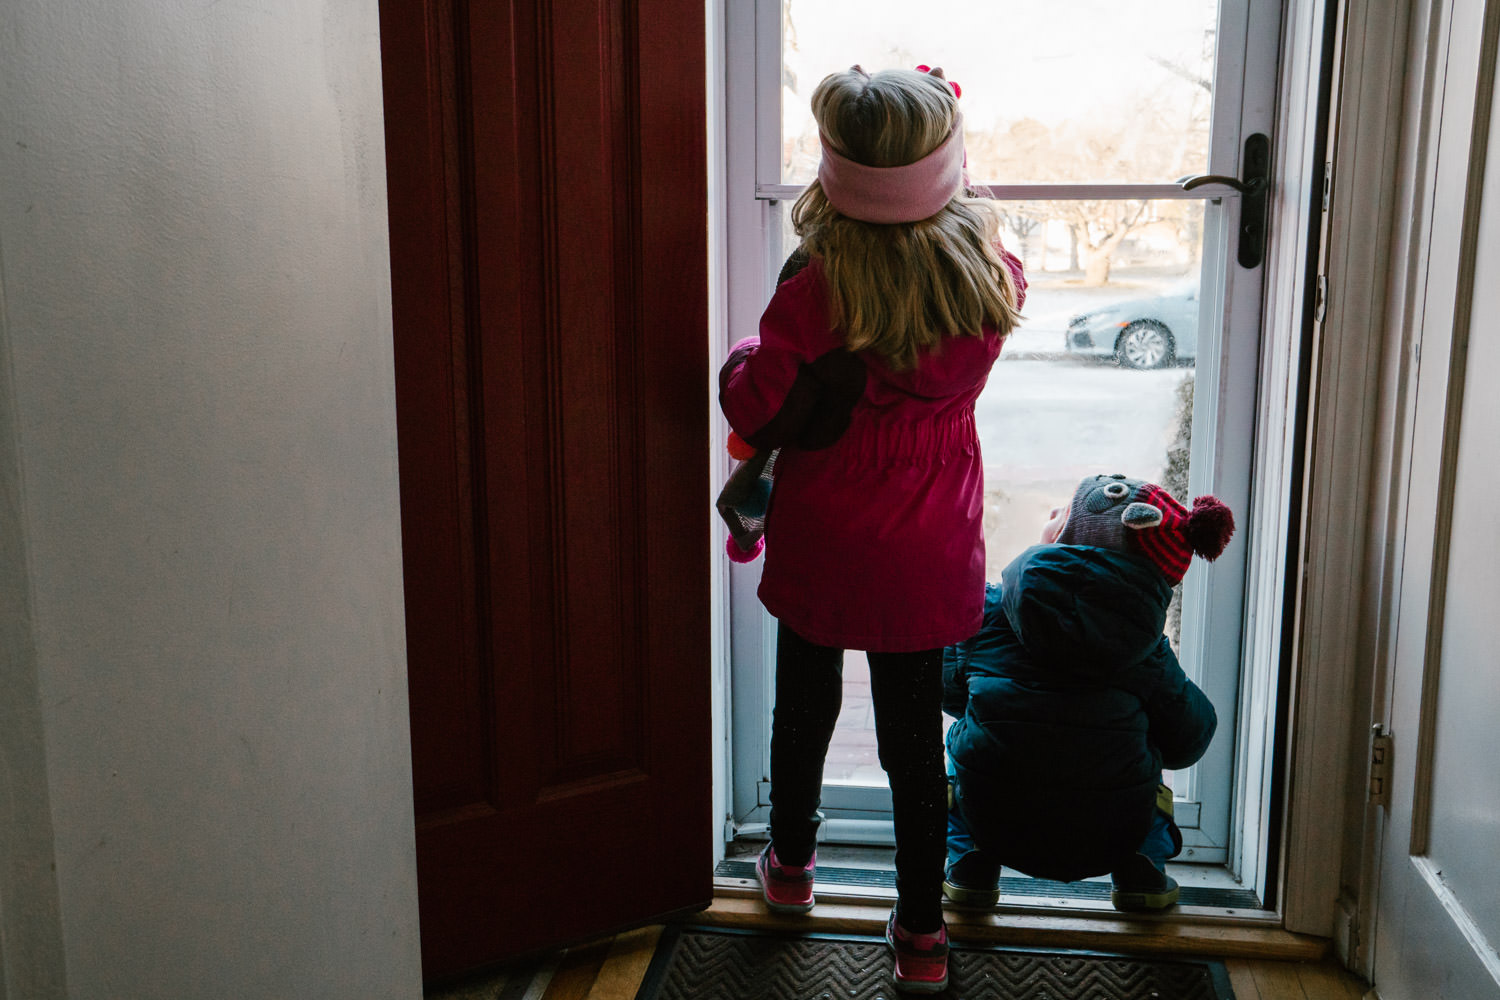 Two children look out their front door on snowy scene.